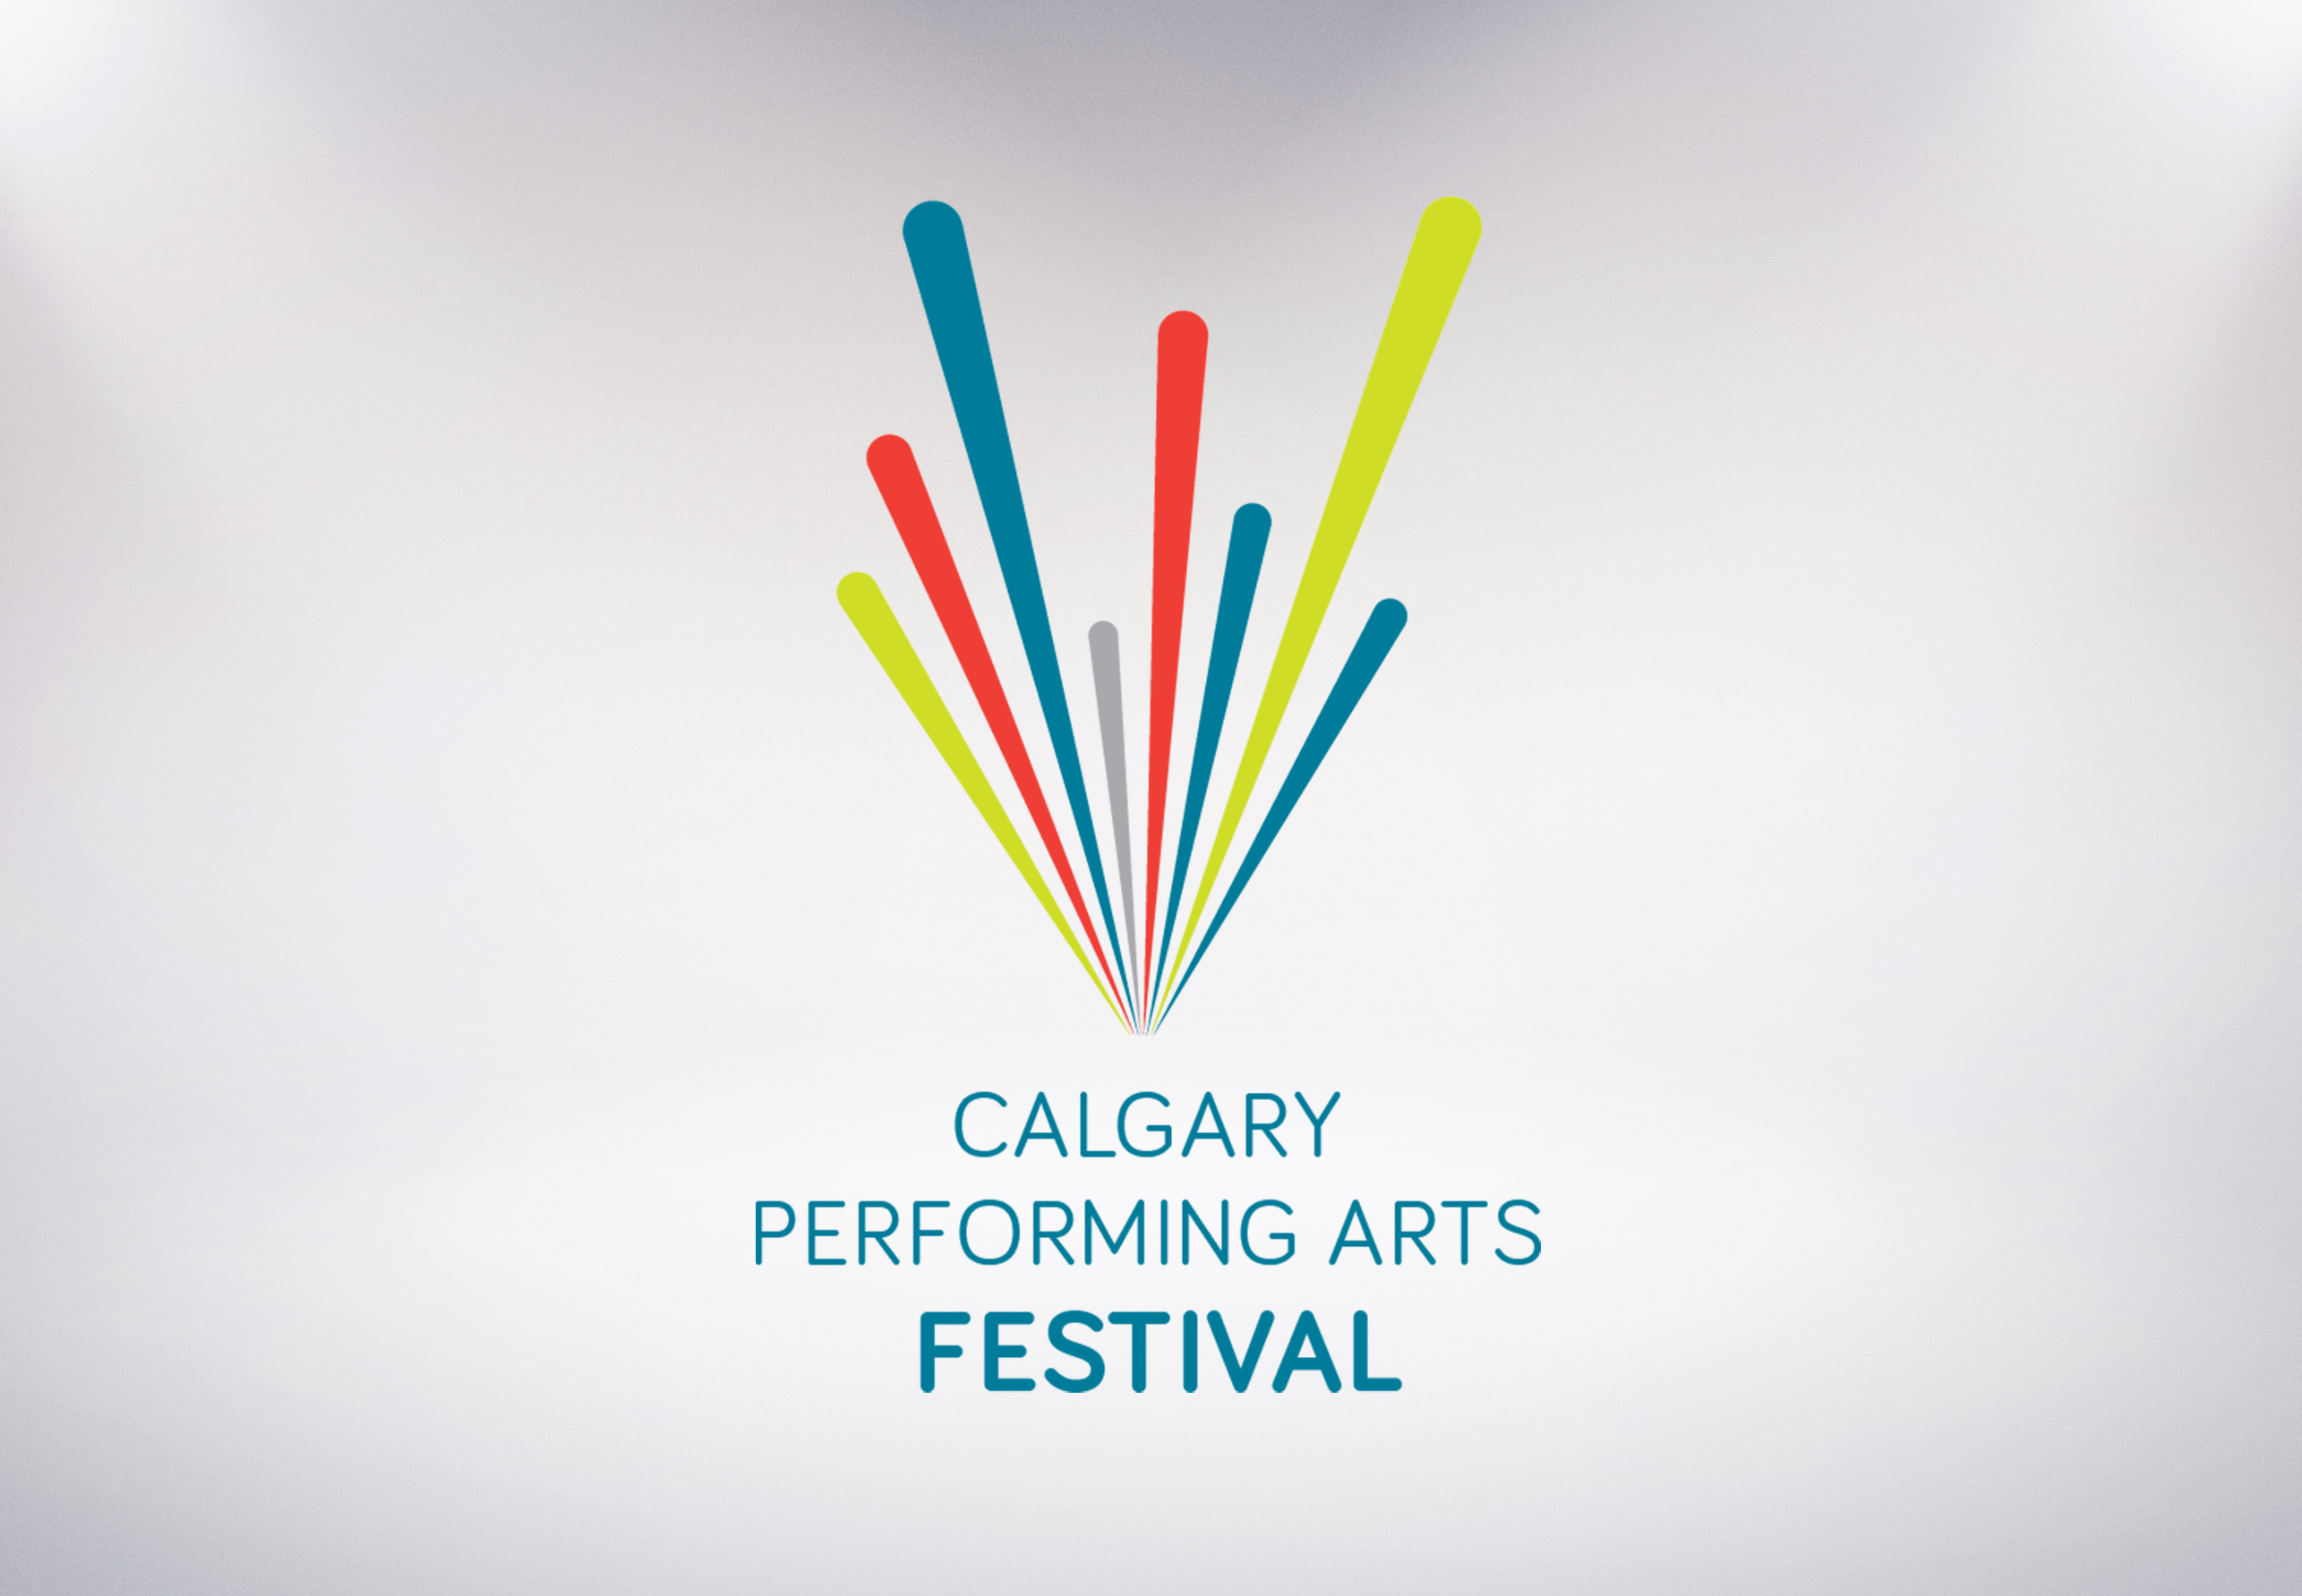 Calgary Performing Arts Festival logo